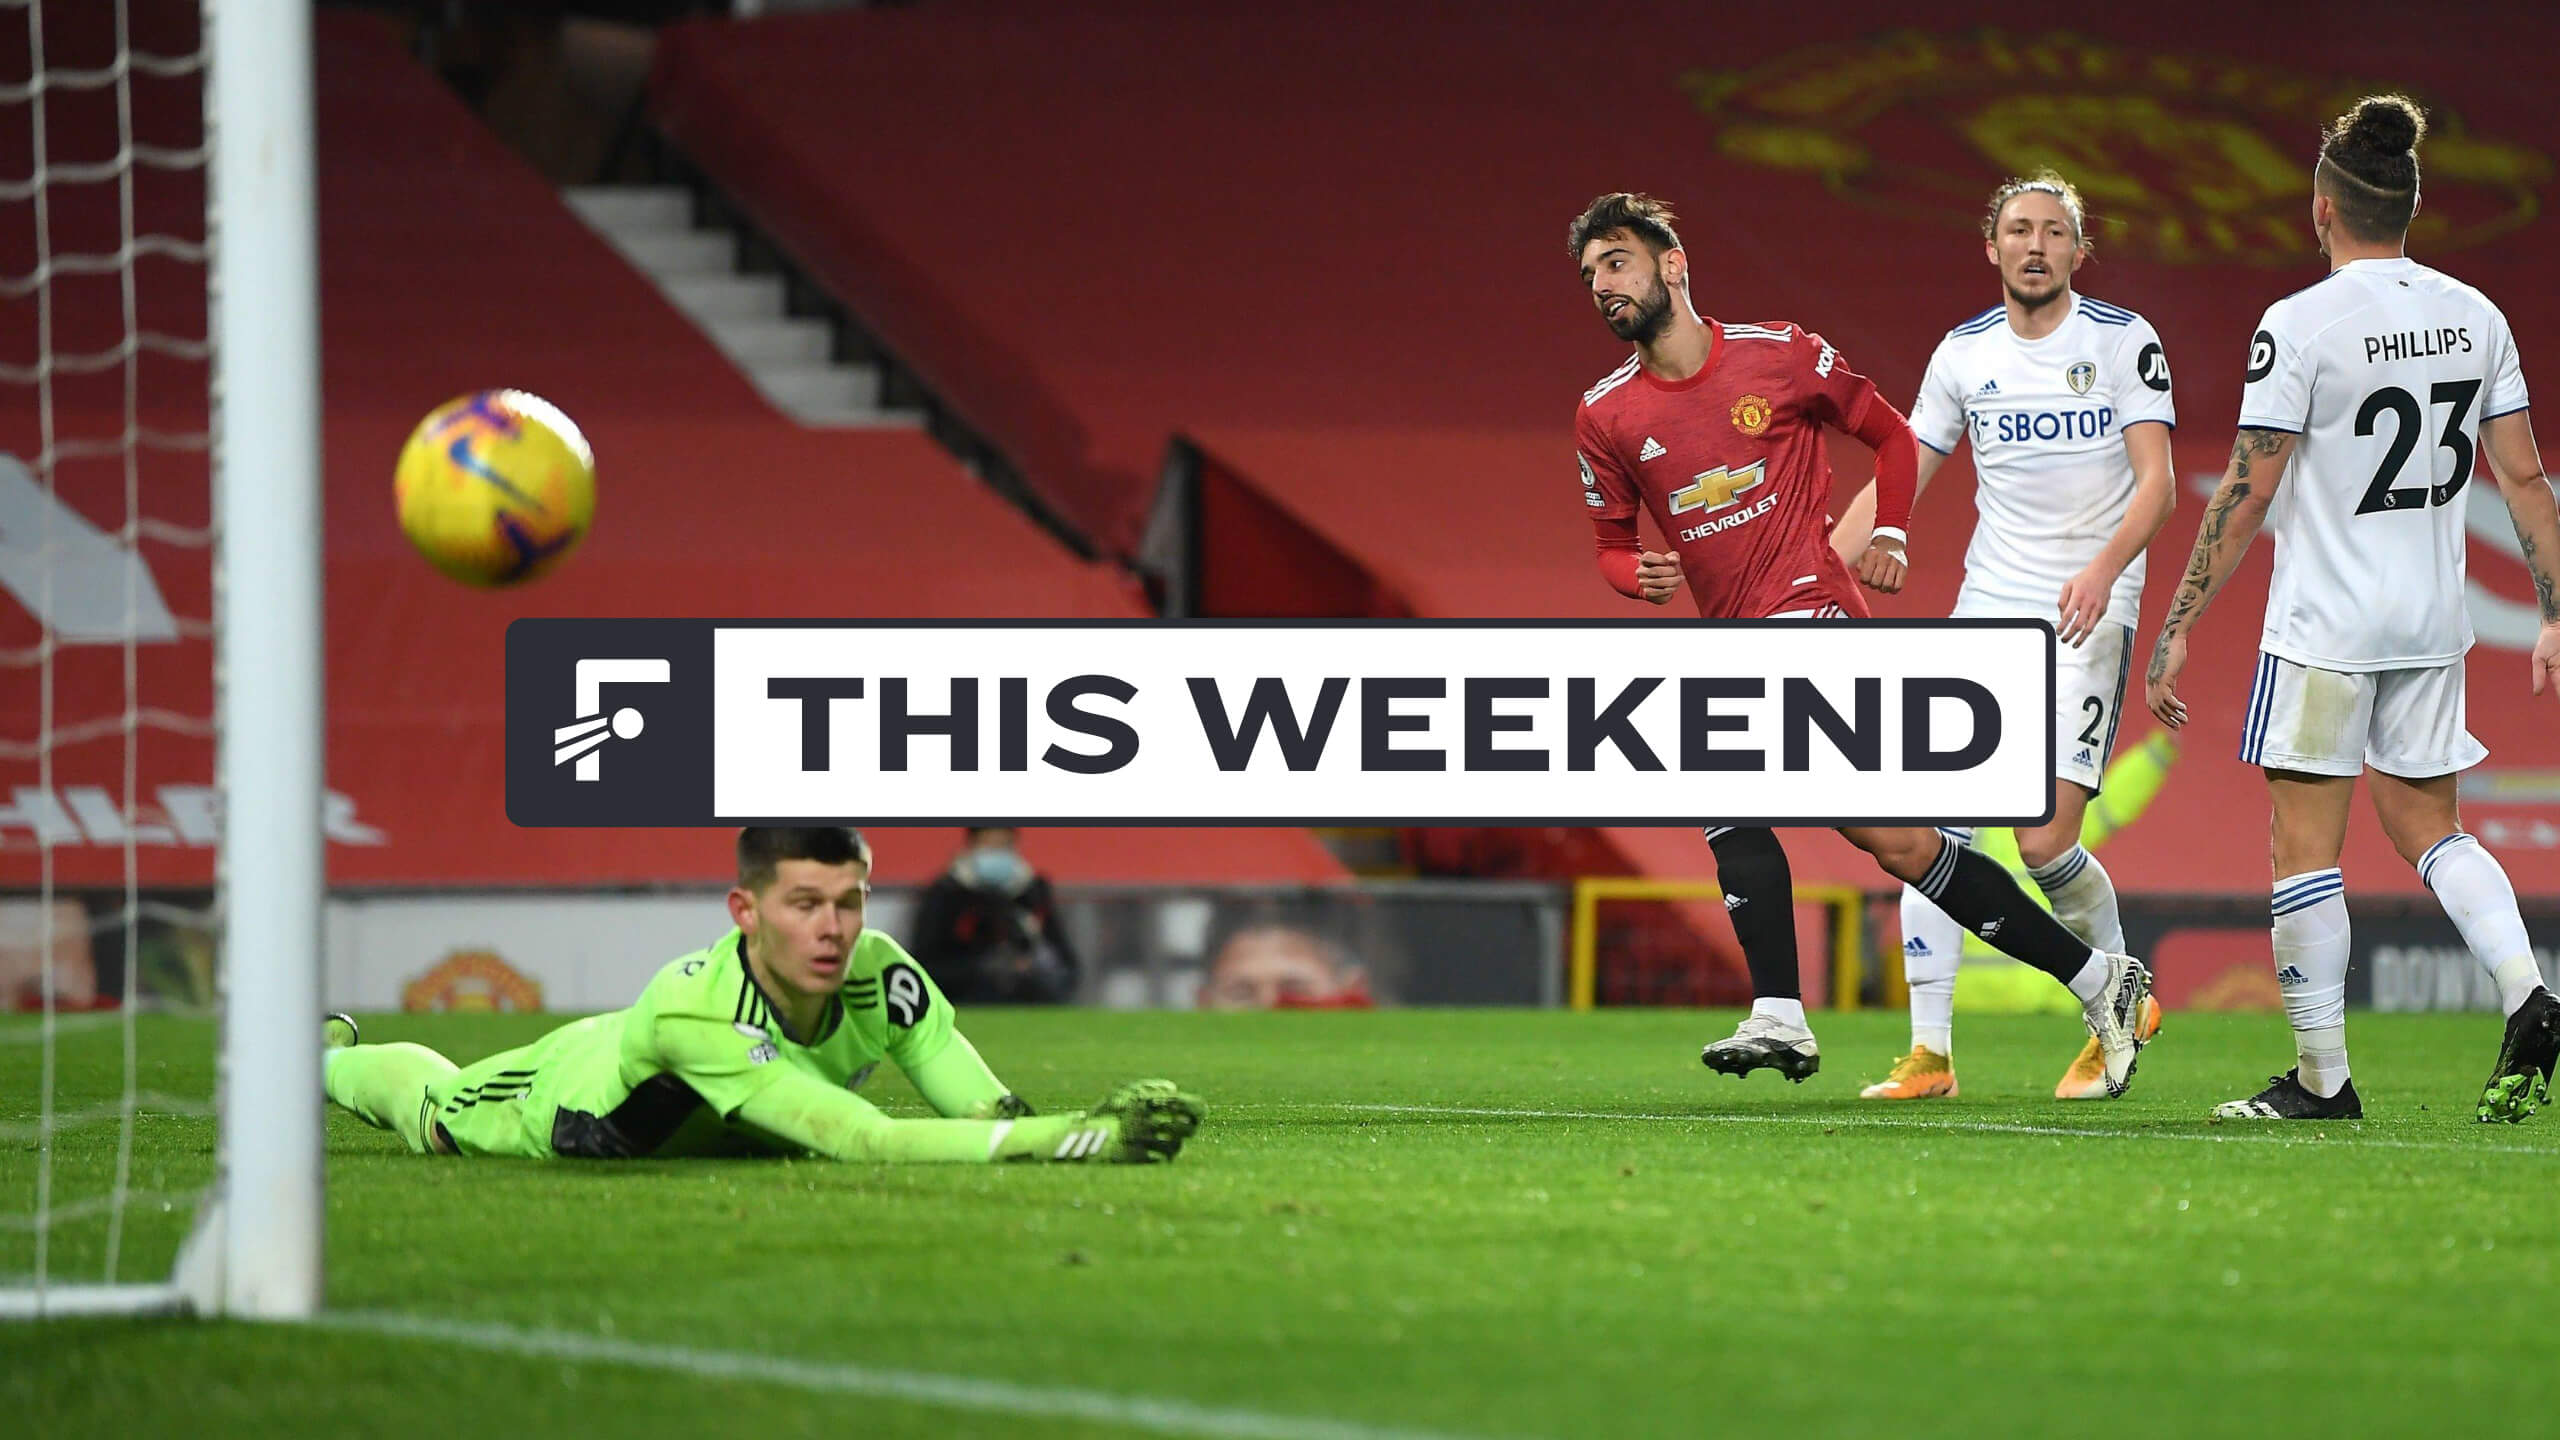 This Weekend: Carabao Cup Final, Premier League rivalries, Bayern's title win?